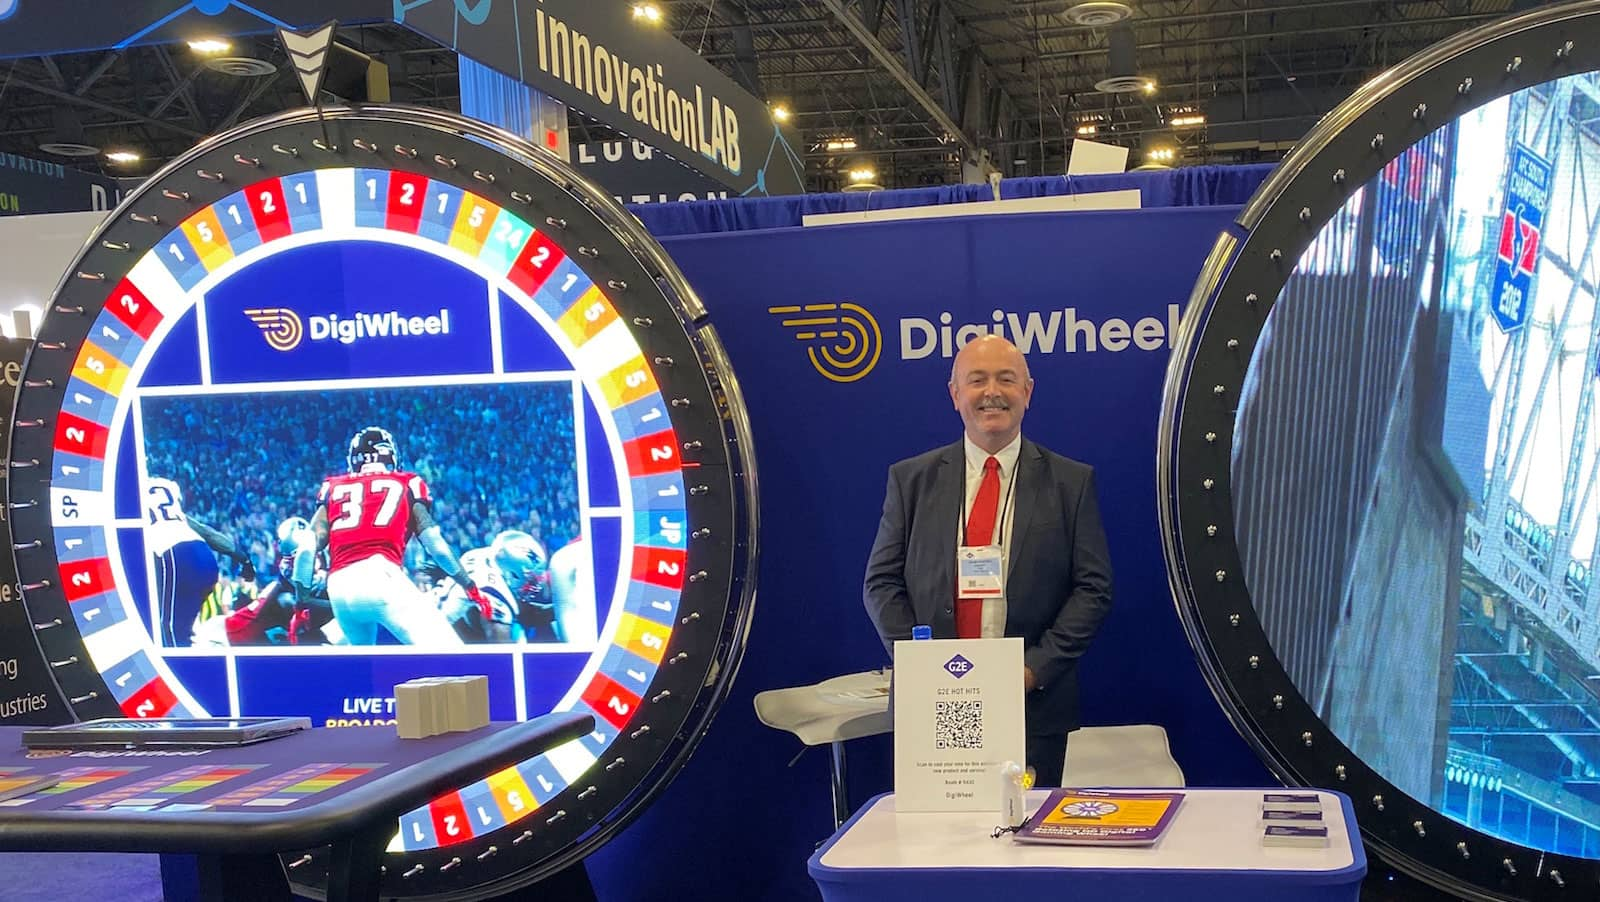 digiwheel-set-to-redefine-the-gaming-entertainment-experience-with-official-launch-at-ice-london-min